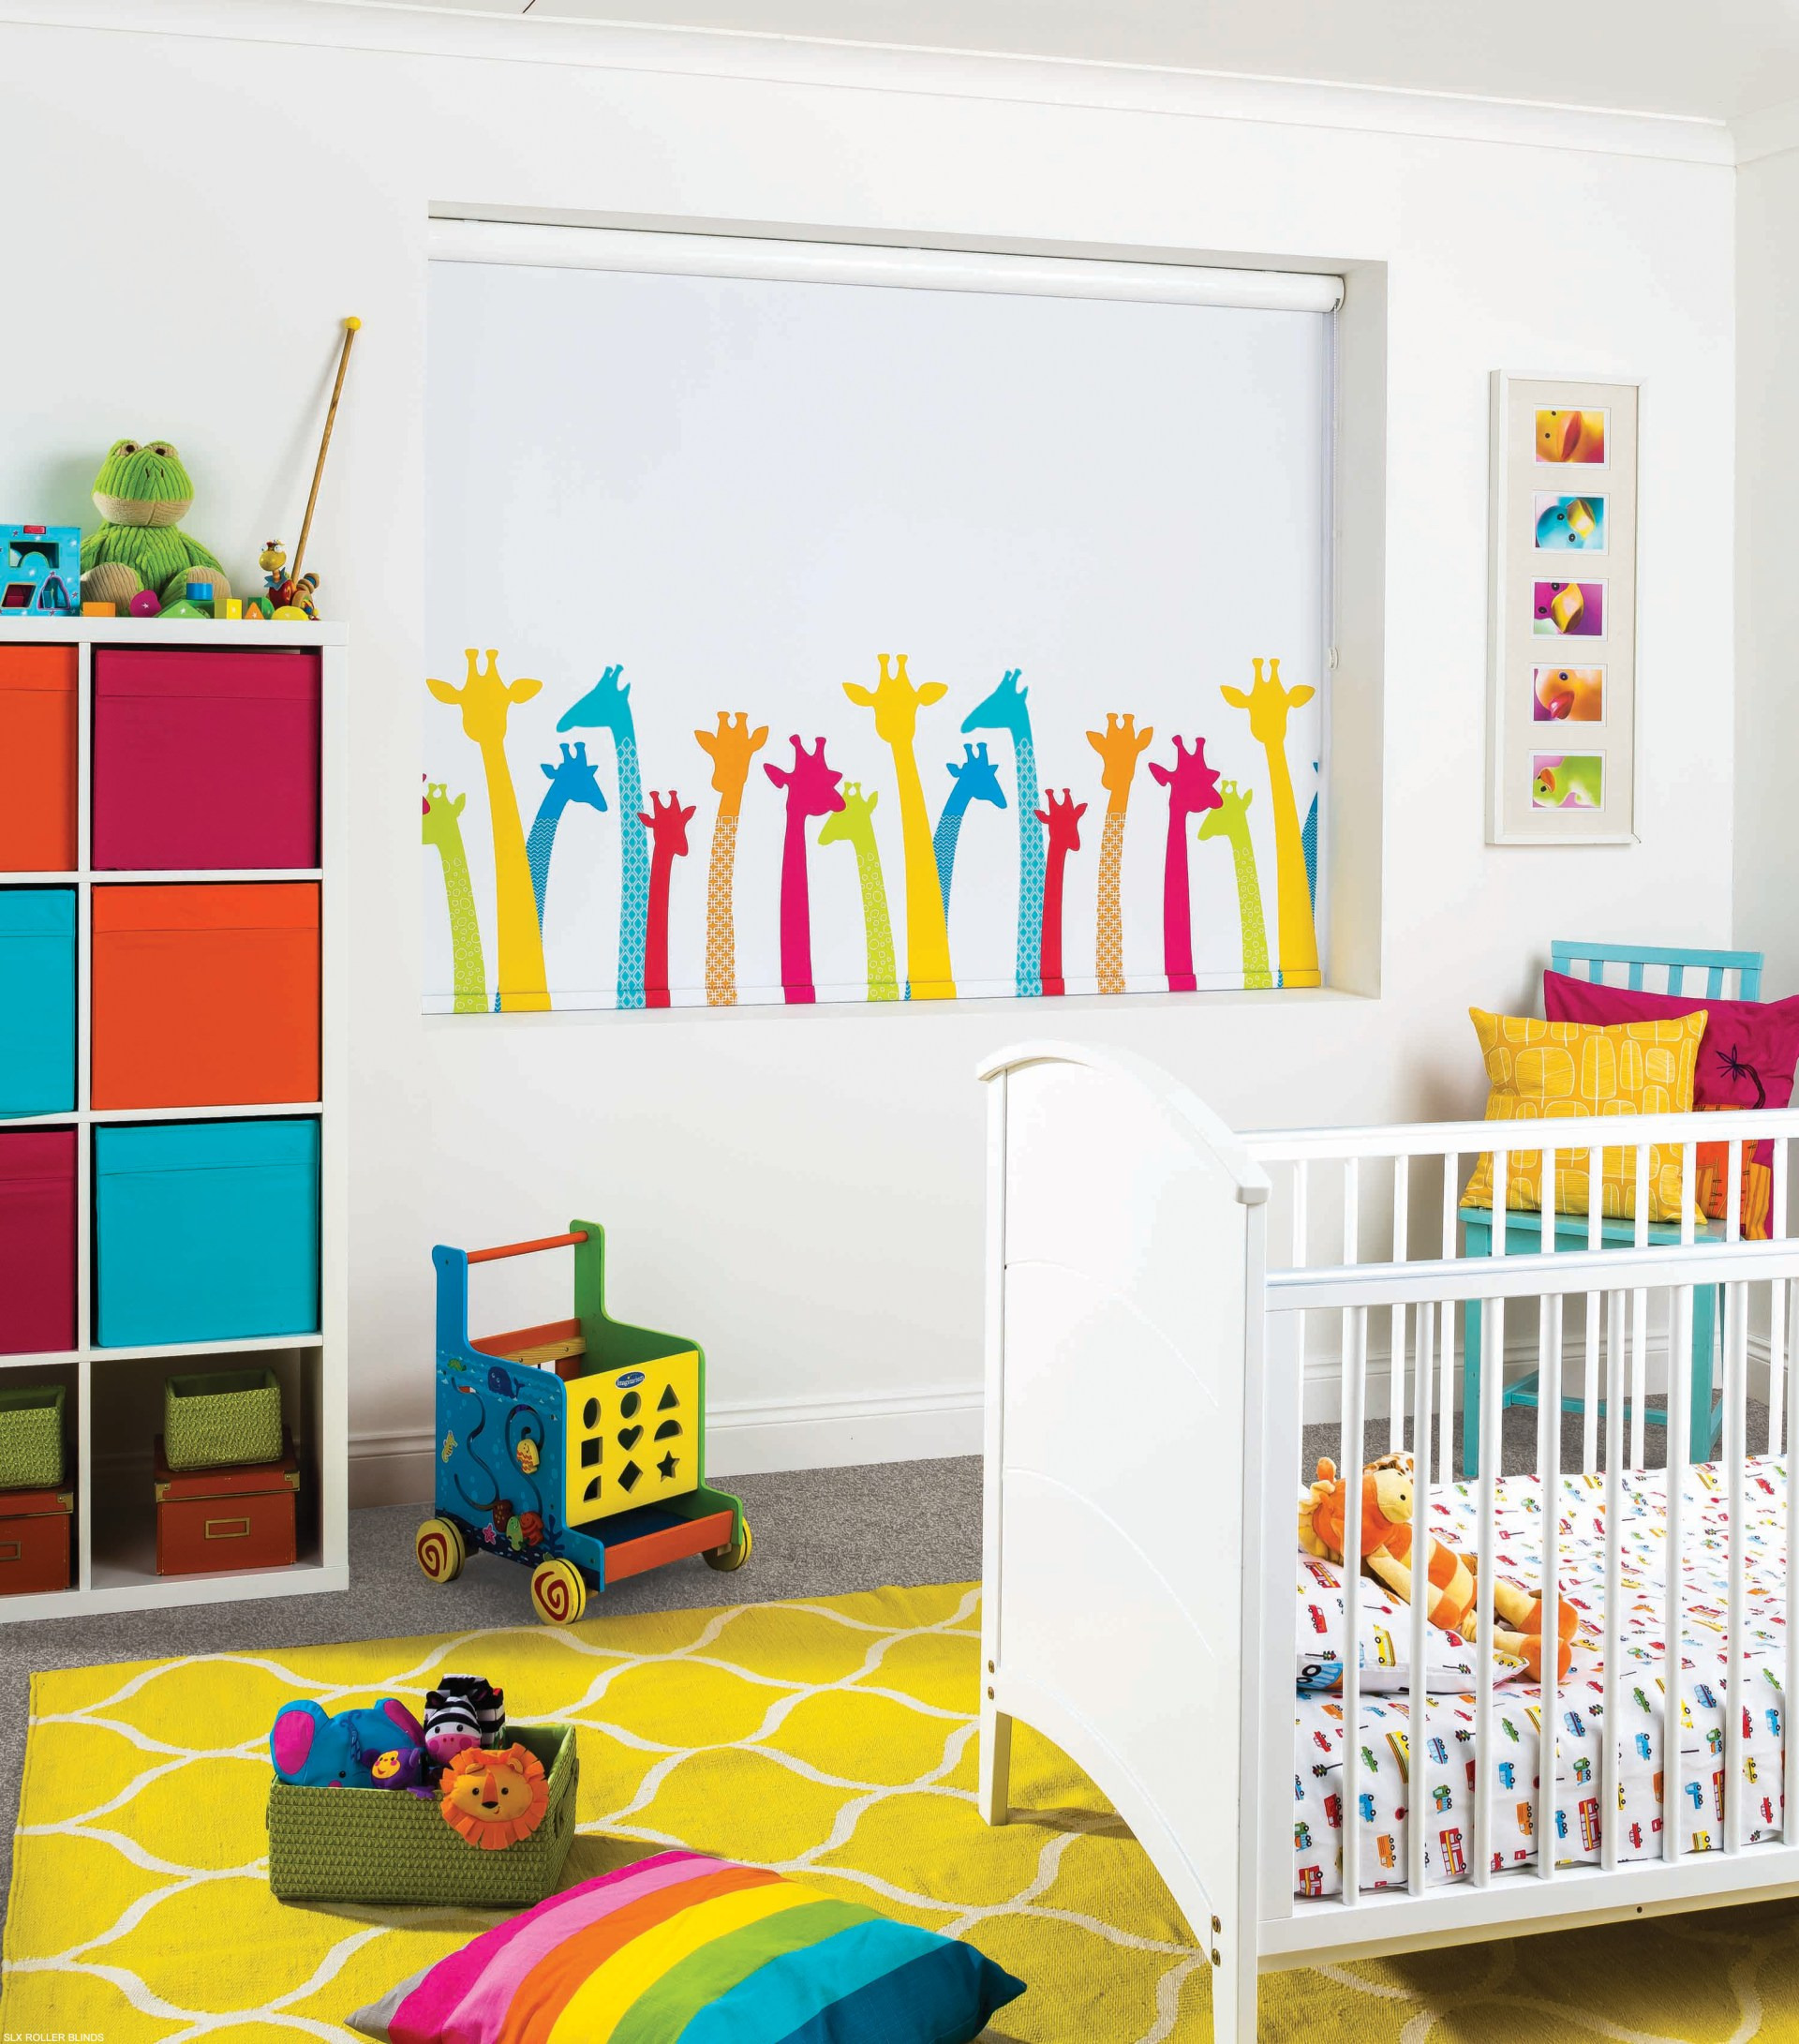 nursery blinds amanda for blinds curtains - Blackout Blinds For Baby Room